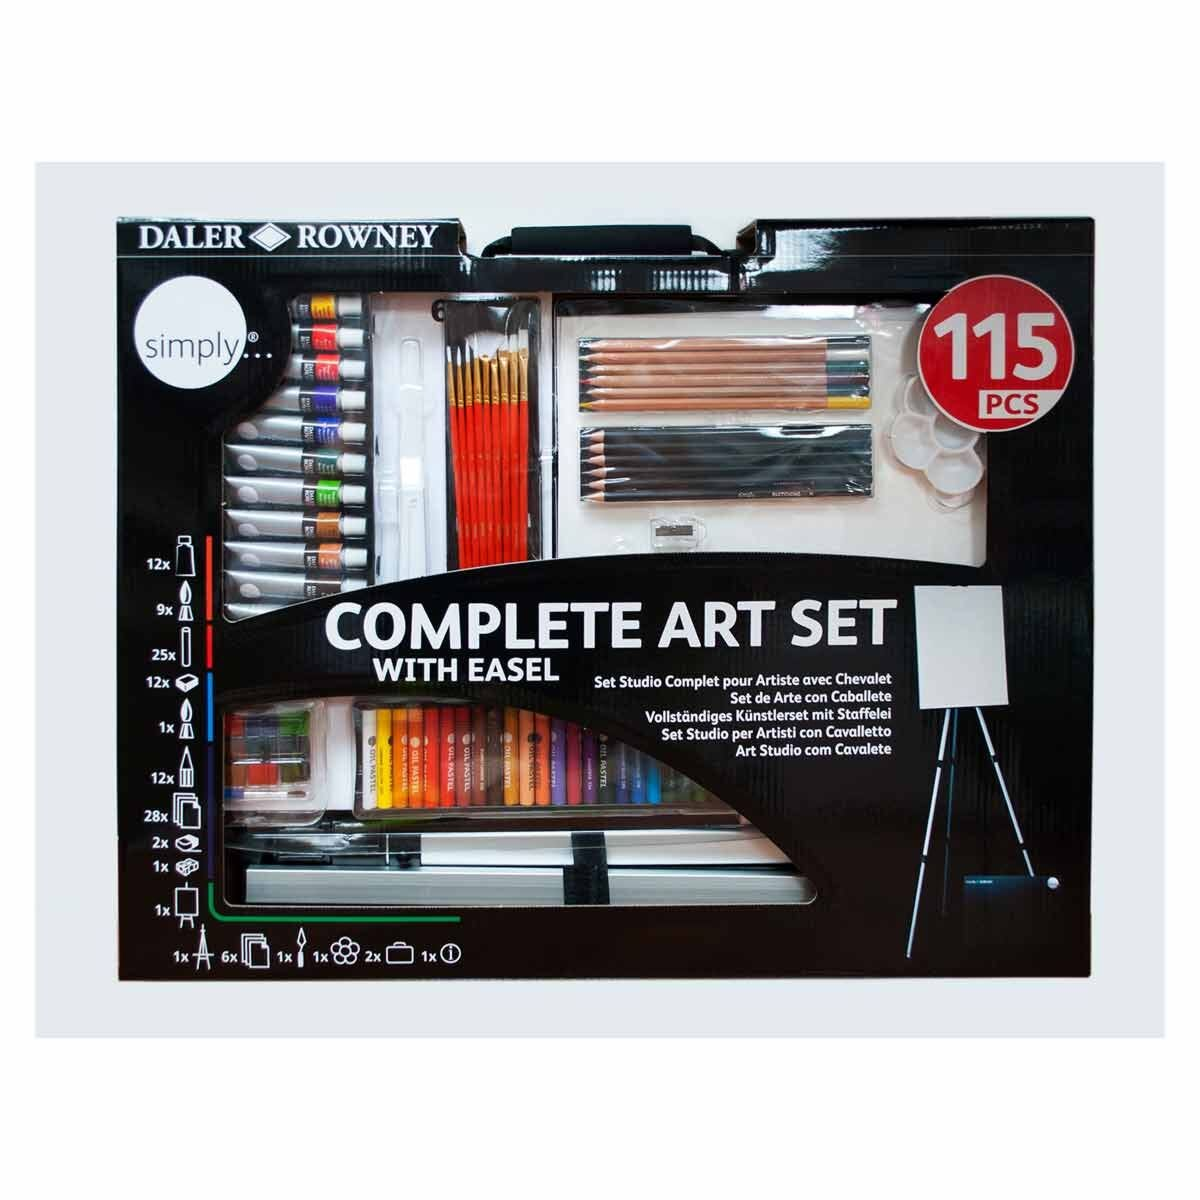 Daler Rowney Simply 115 Piece Art Set with Easel